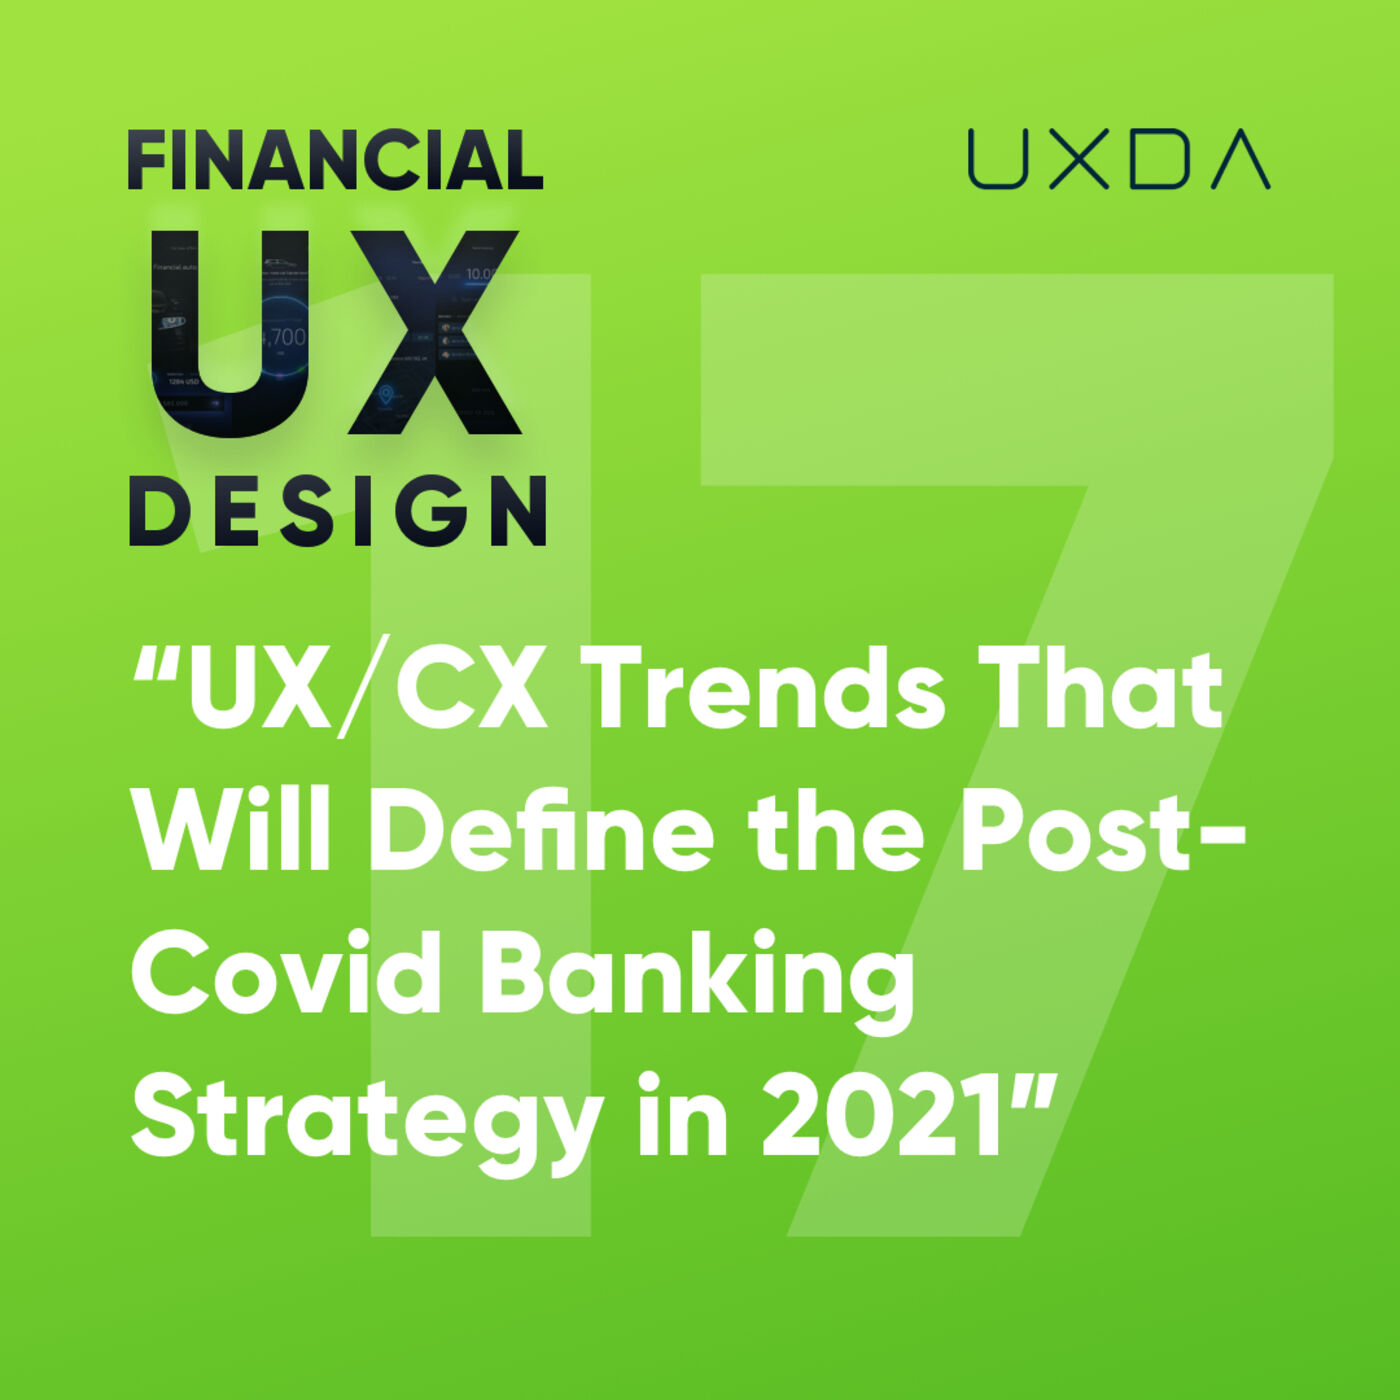 #17 Banking Customer Experience Trends that Will Define the Post-Covid Digital Strategy